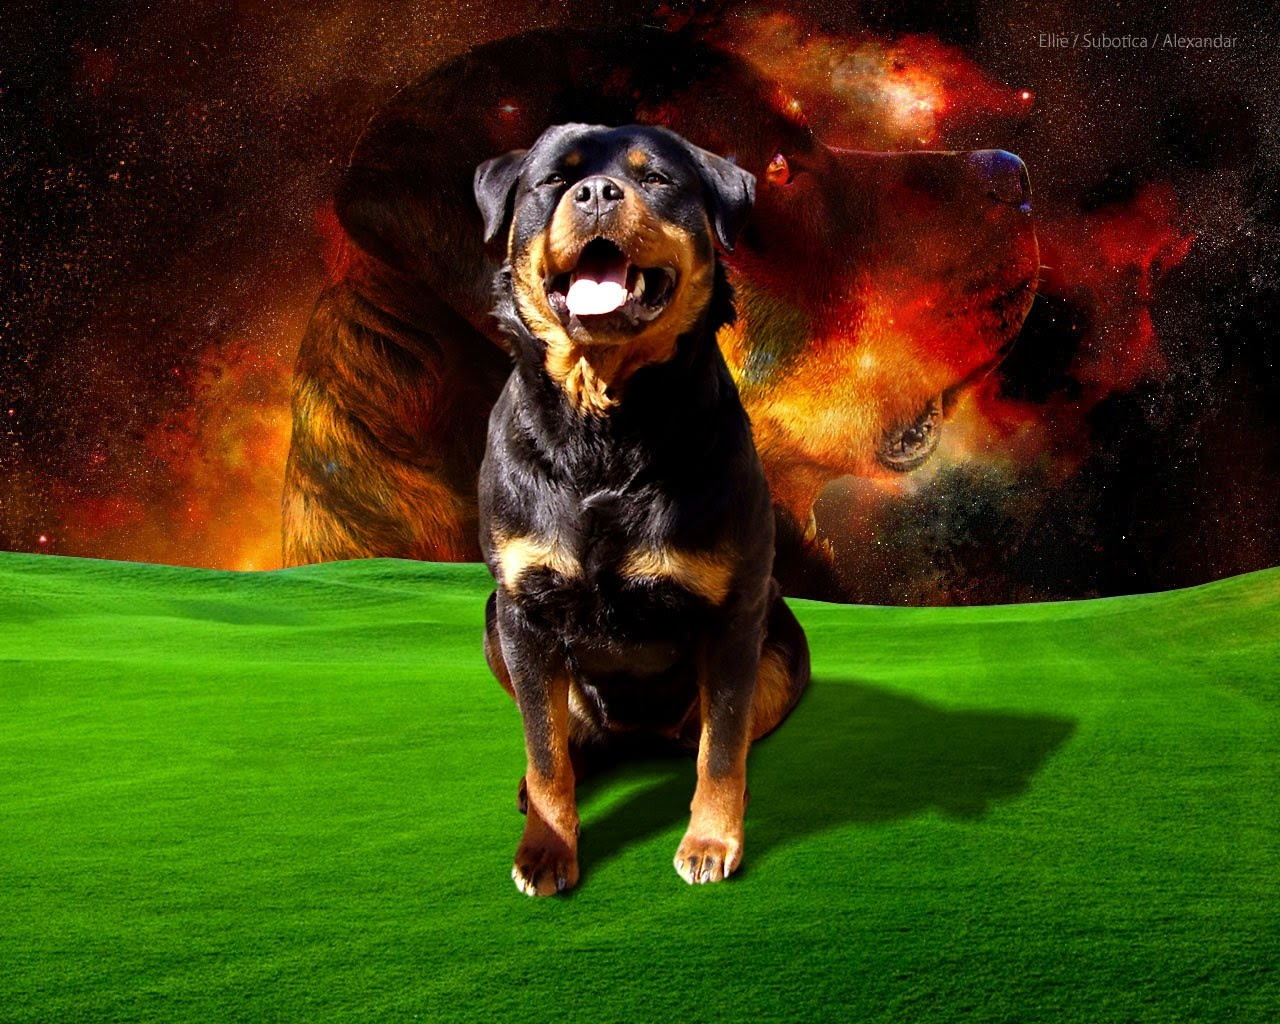 cool_rottweiler_dog_wallpaper1280x1024.jpg